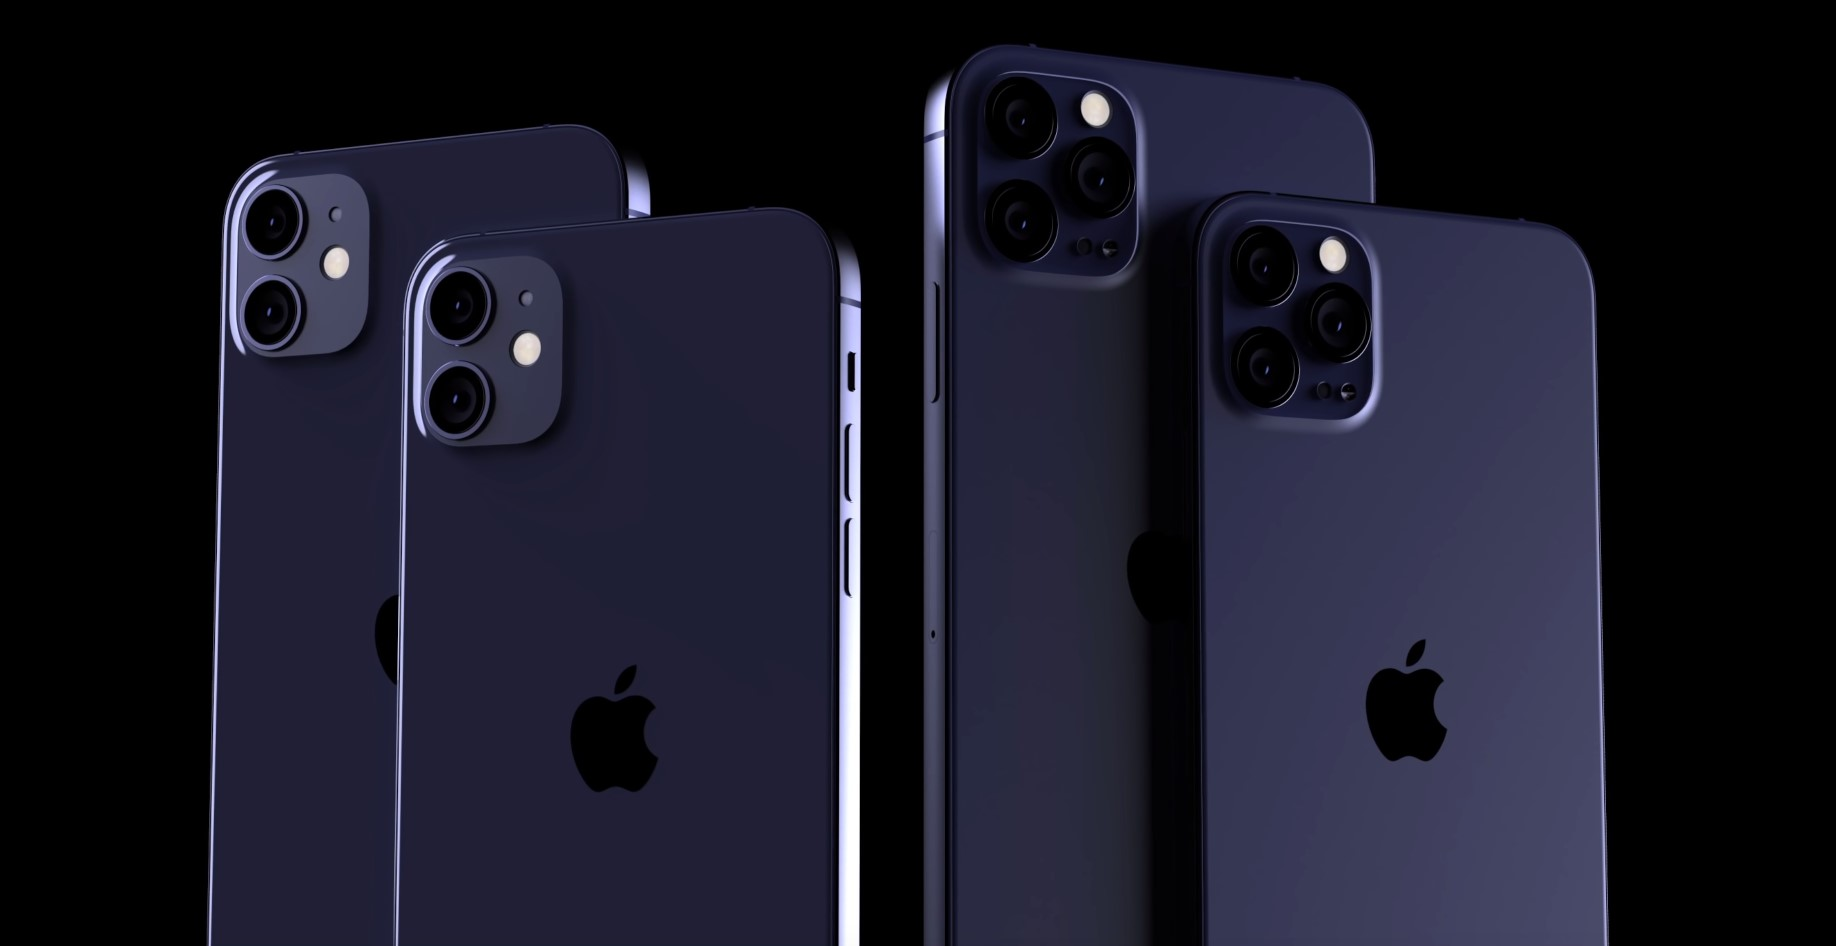 How To Turn Off Iphone 12 And Iphone 12 Pro Models